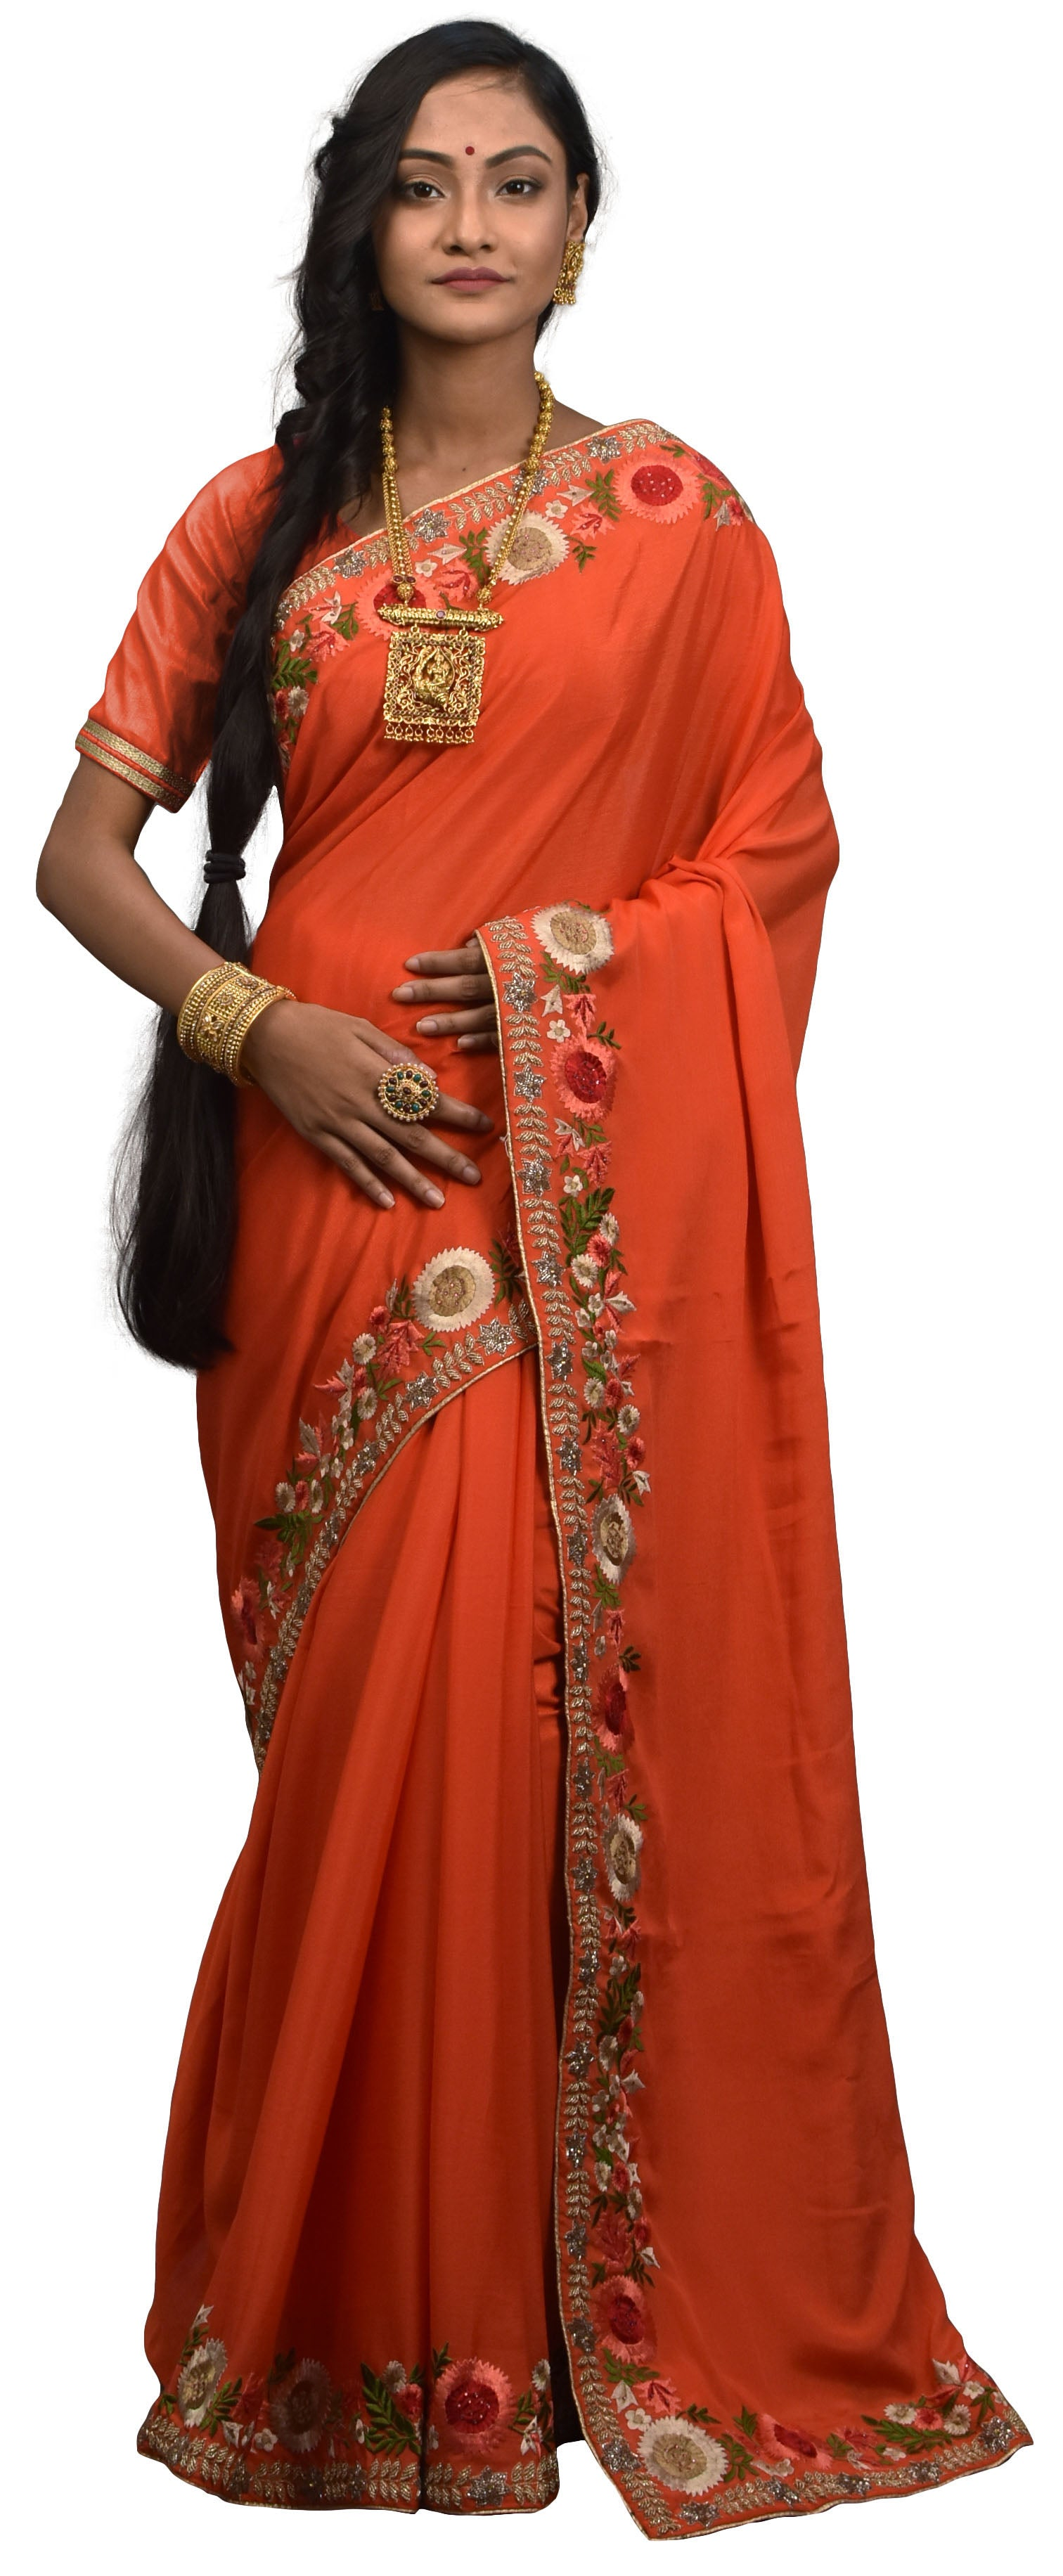 SMSAREE Orange Designer Wedding Partywear Crepe (Chinon) Cutdana Stone Thread & Beads Hand Embroidery Work Bridal Saree Sari With Blouse Piece E592